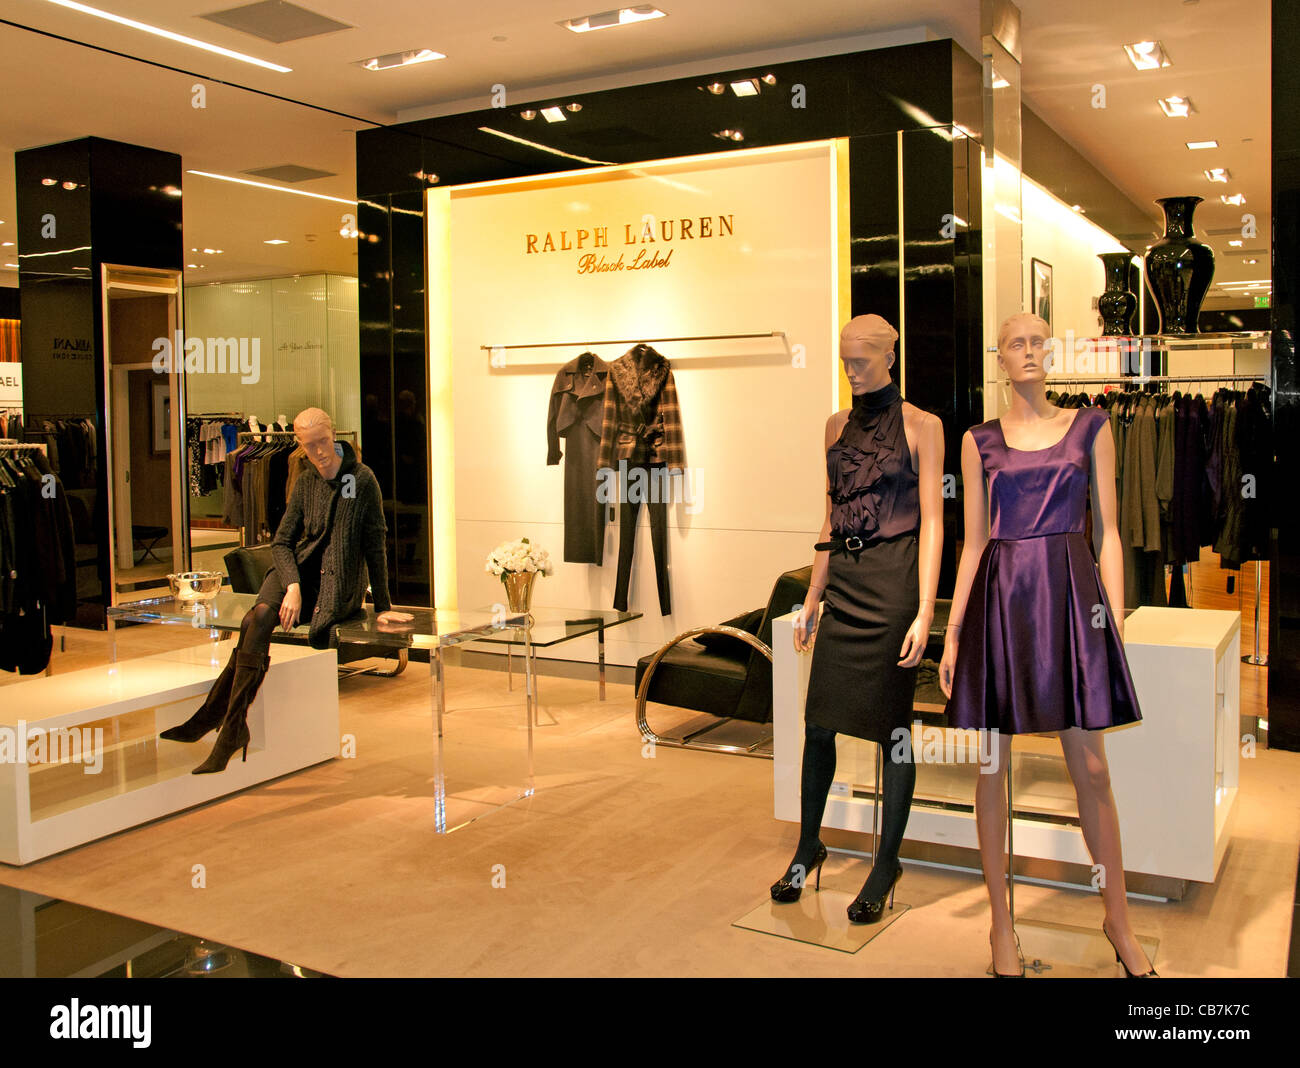 Ralph Lauren San Francisco California Fashion shop store USA Stock ...